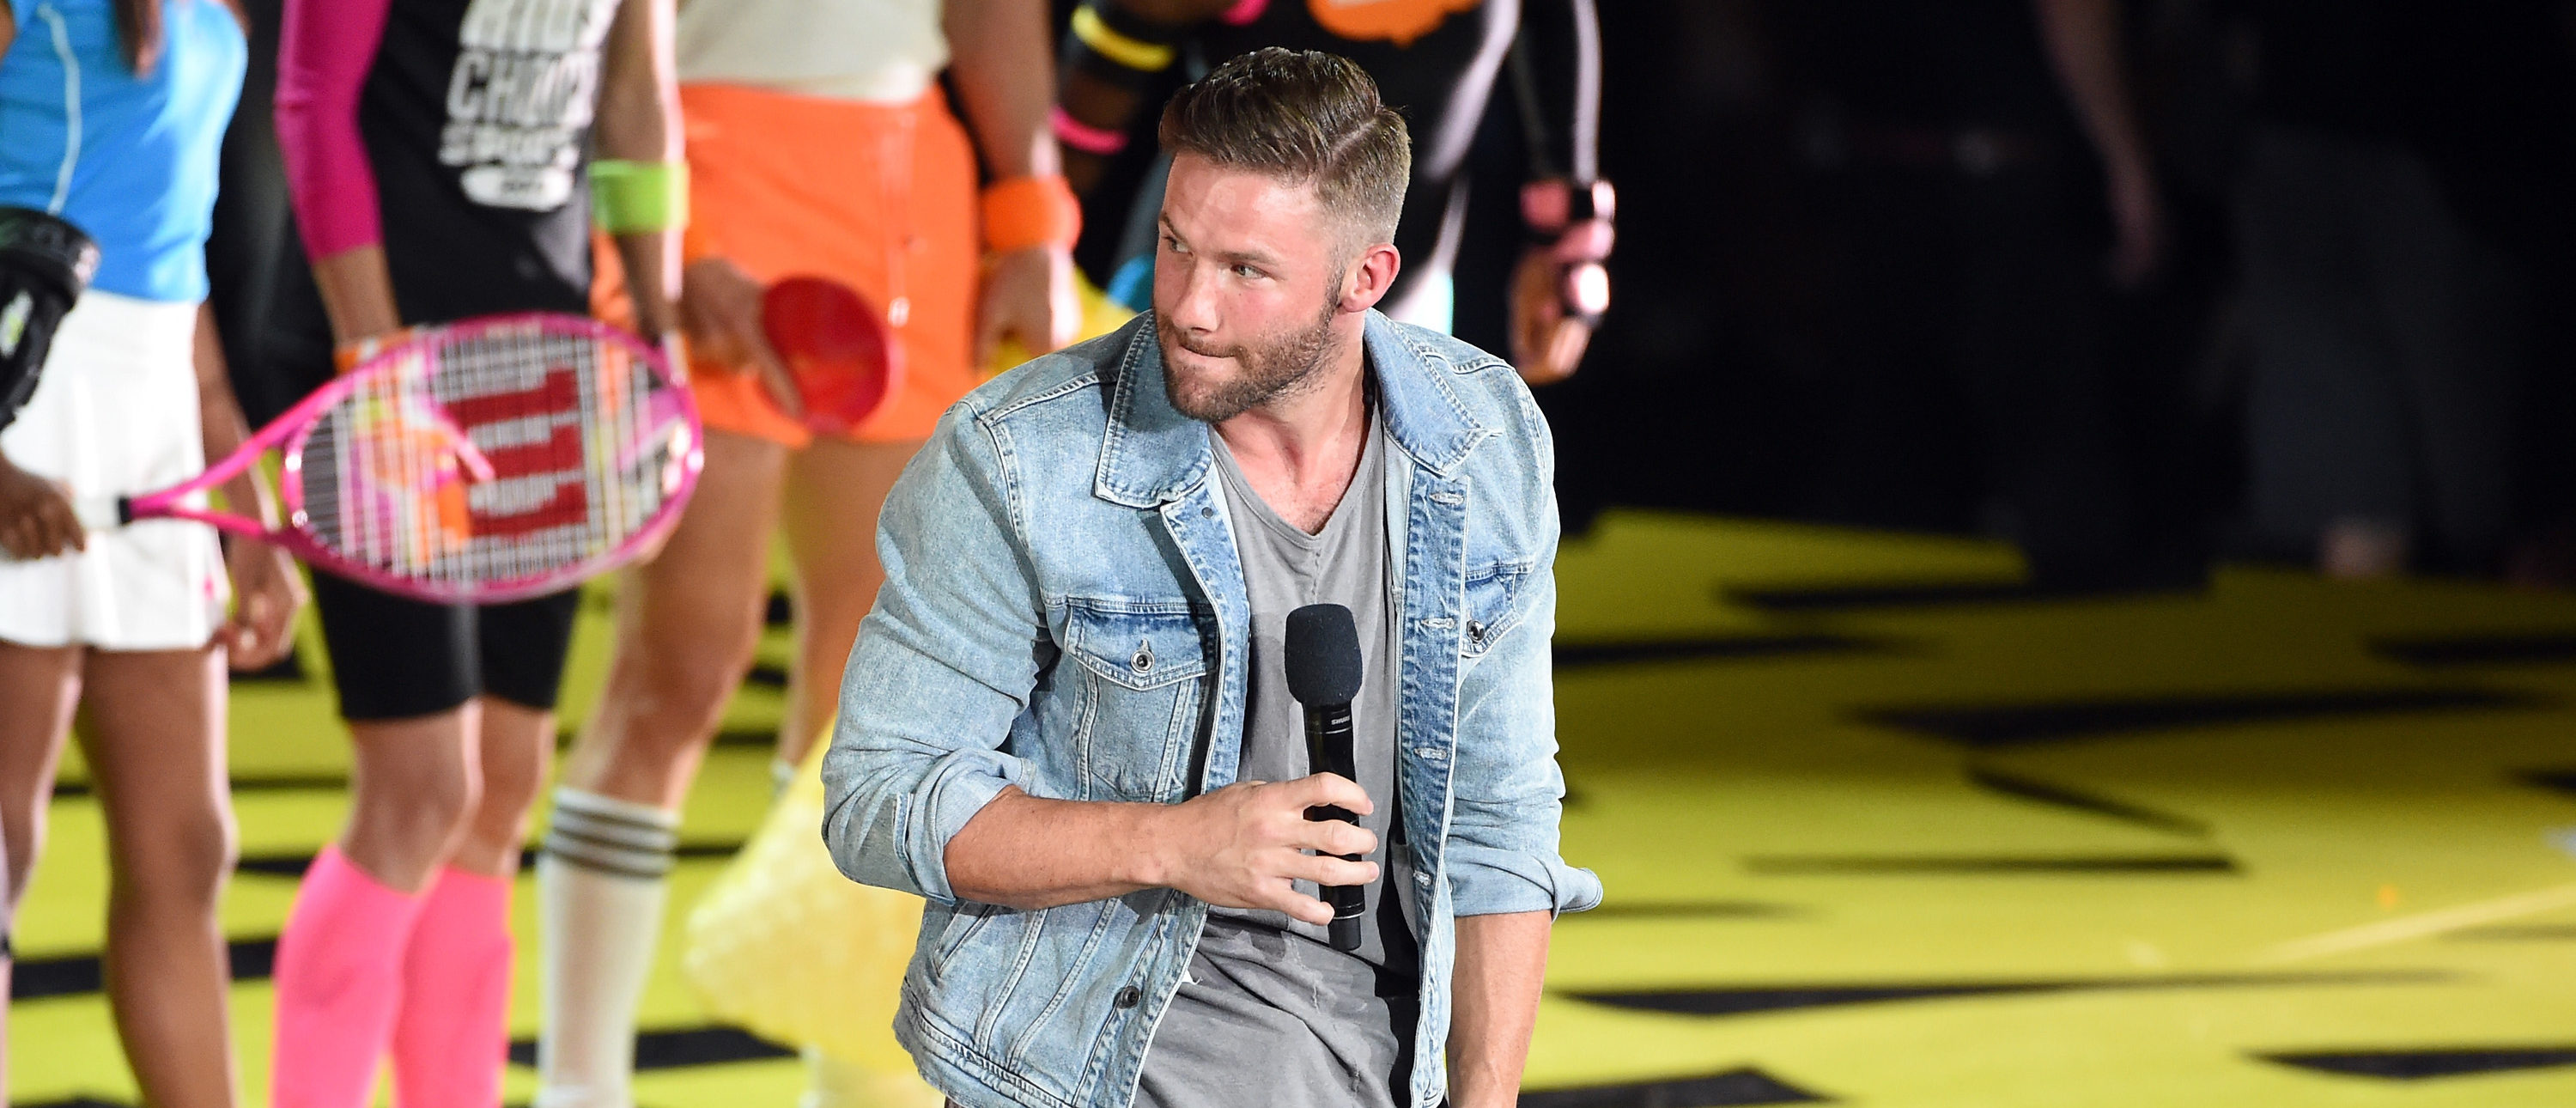 LOS ANGELES, CA - JULY 13: NFL player Julian Edelman speaks onstage during Nickelodeon Kids' Choice Sports Awards 2017 at Pauley Pavilion on July 13, 2017 in Los Angeles, California. (Photo by Kevin Winter/Getty Images)